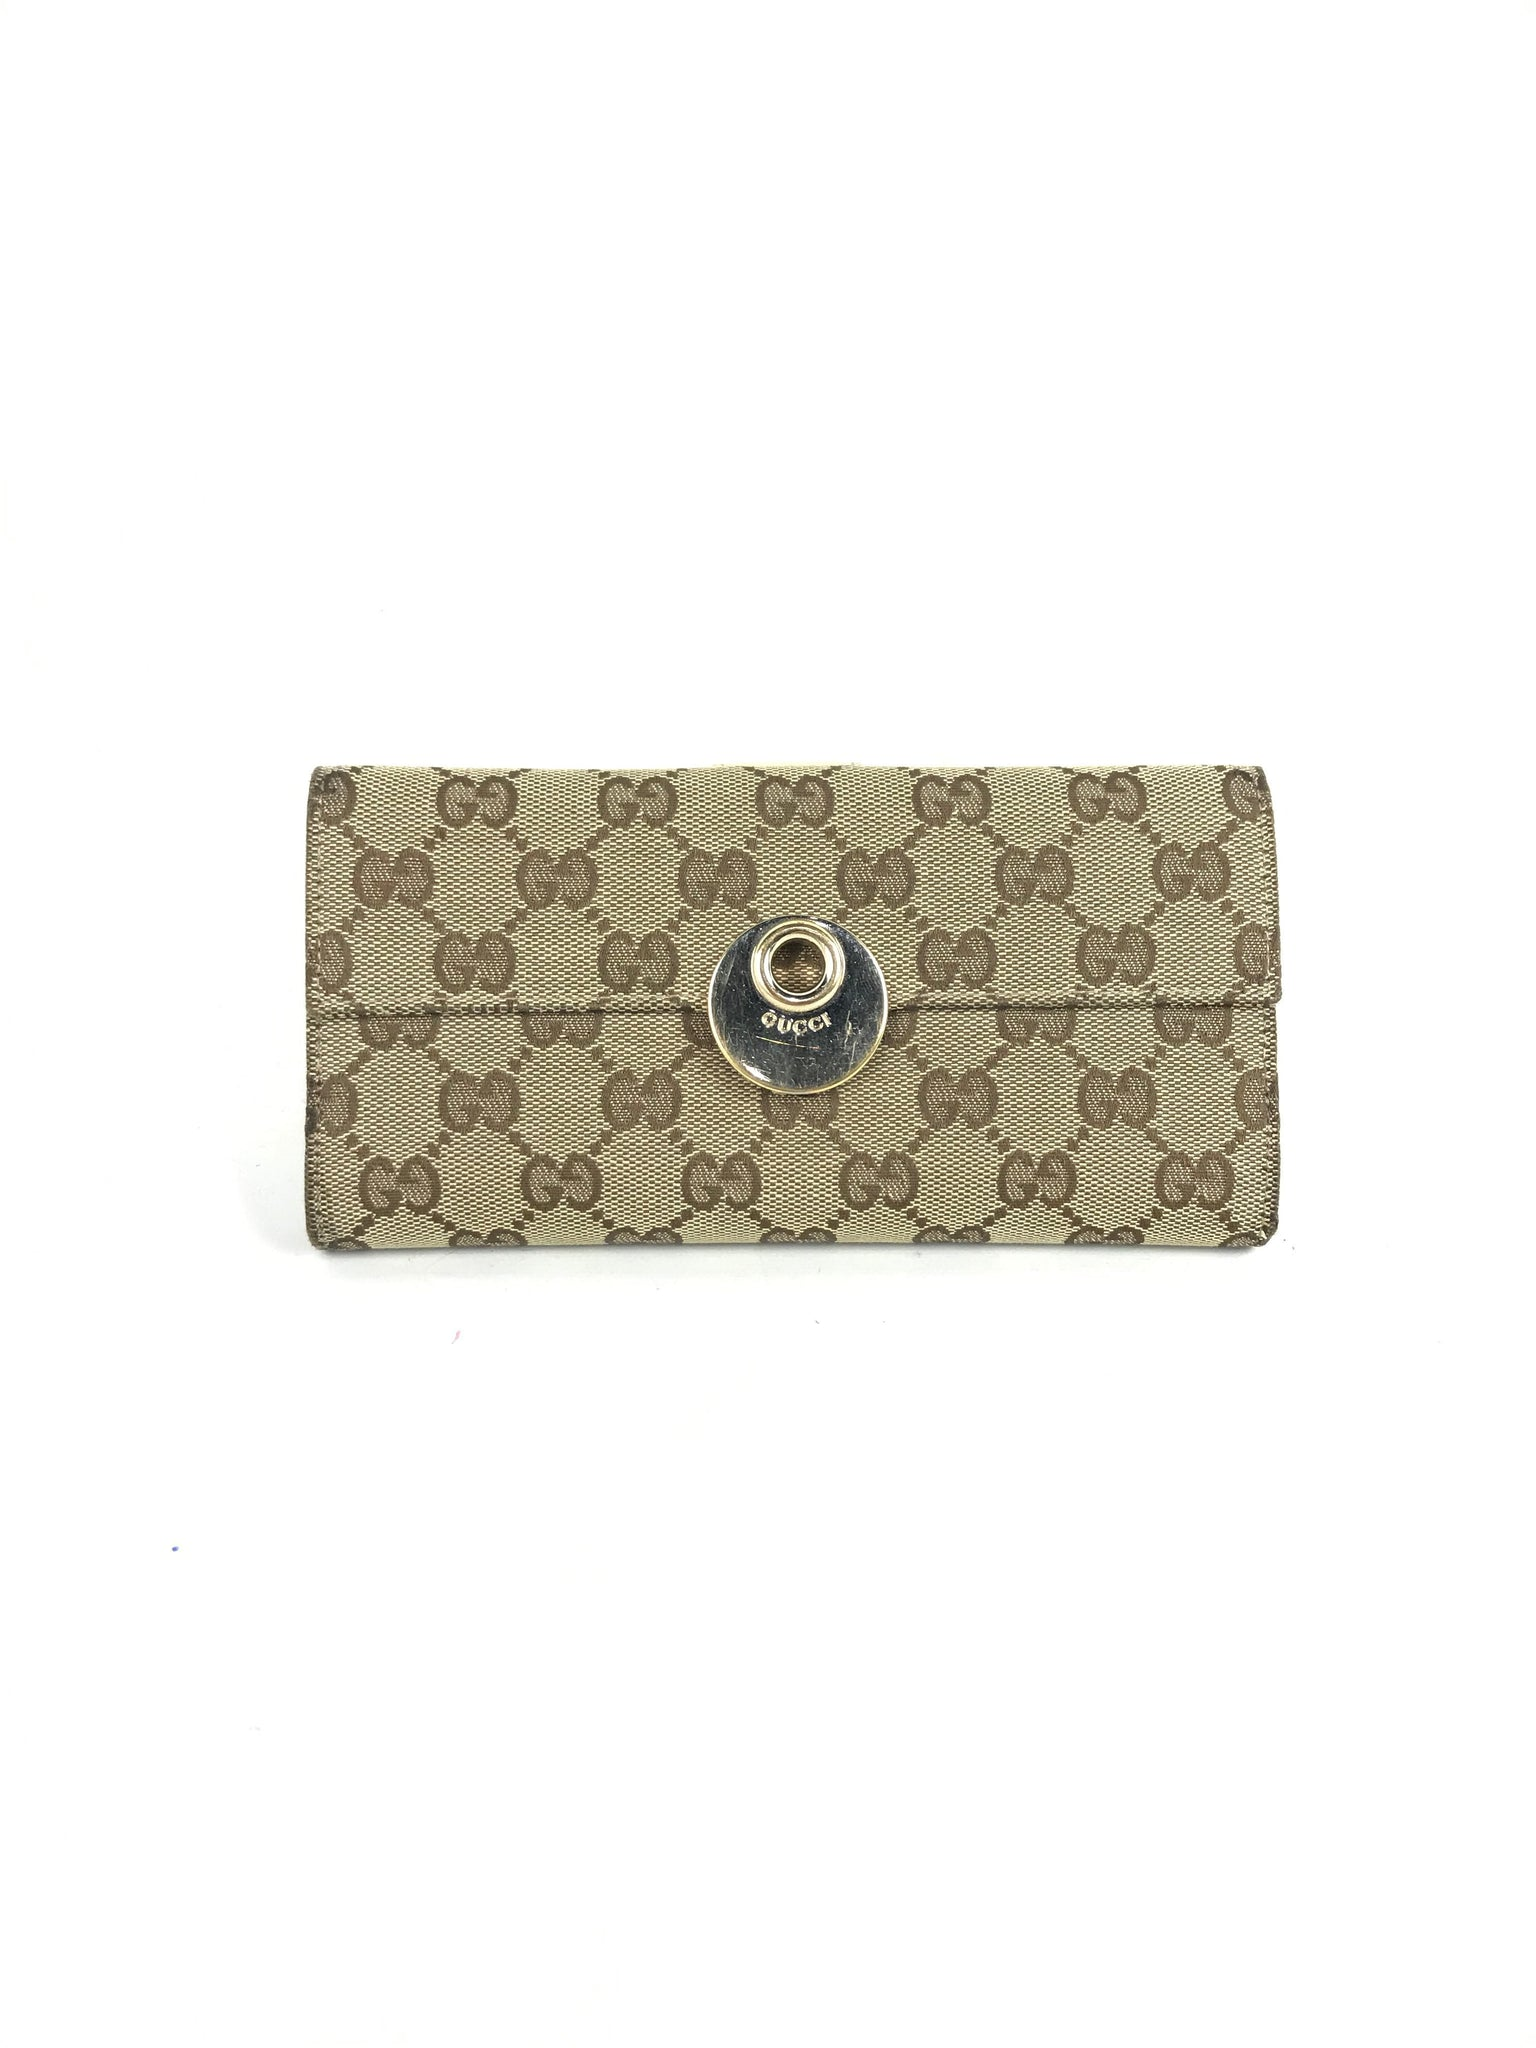 GUCCI Monogram GG Canvas/beige grained leather bifold long wallet